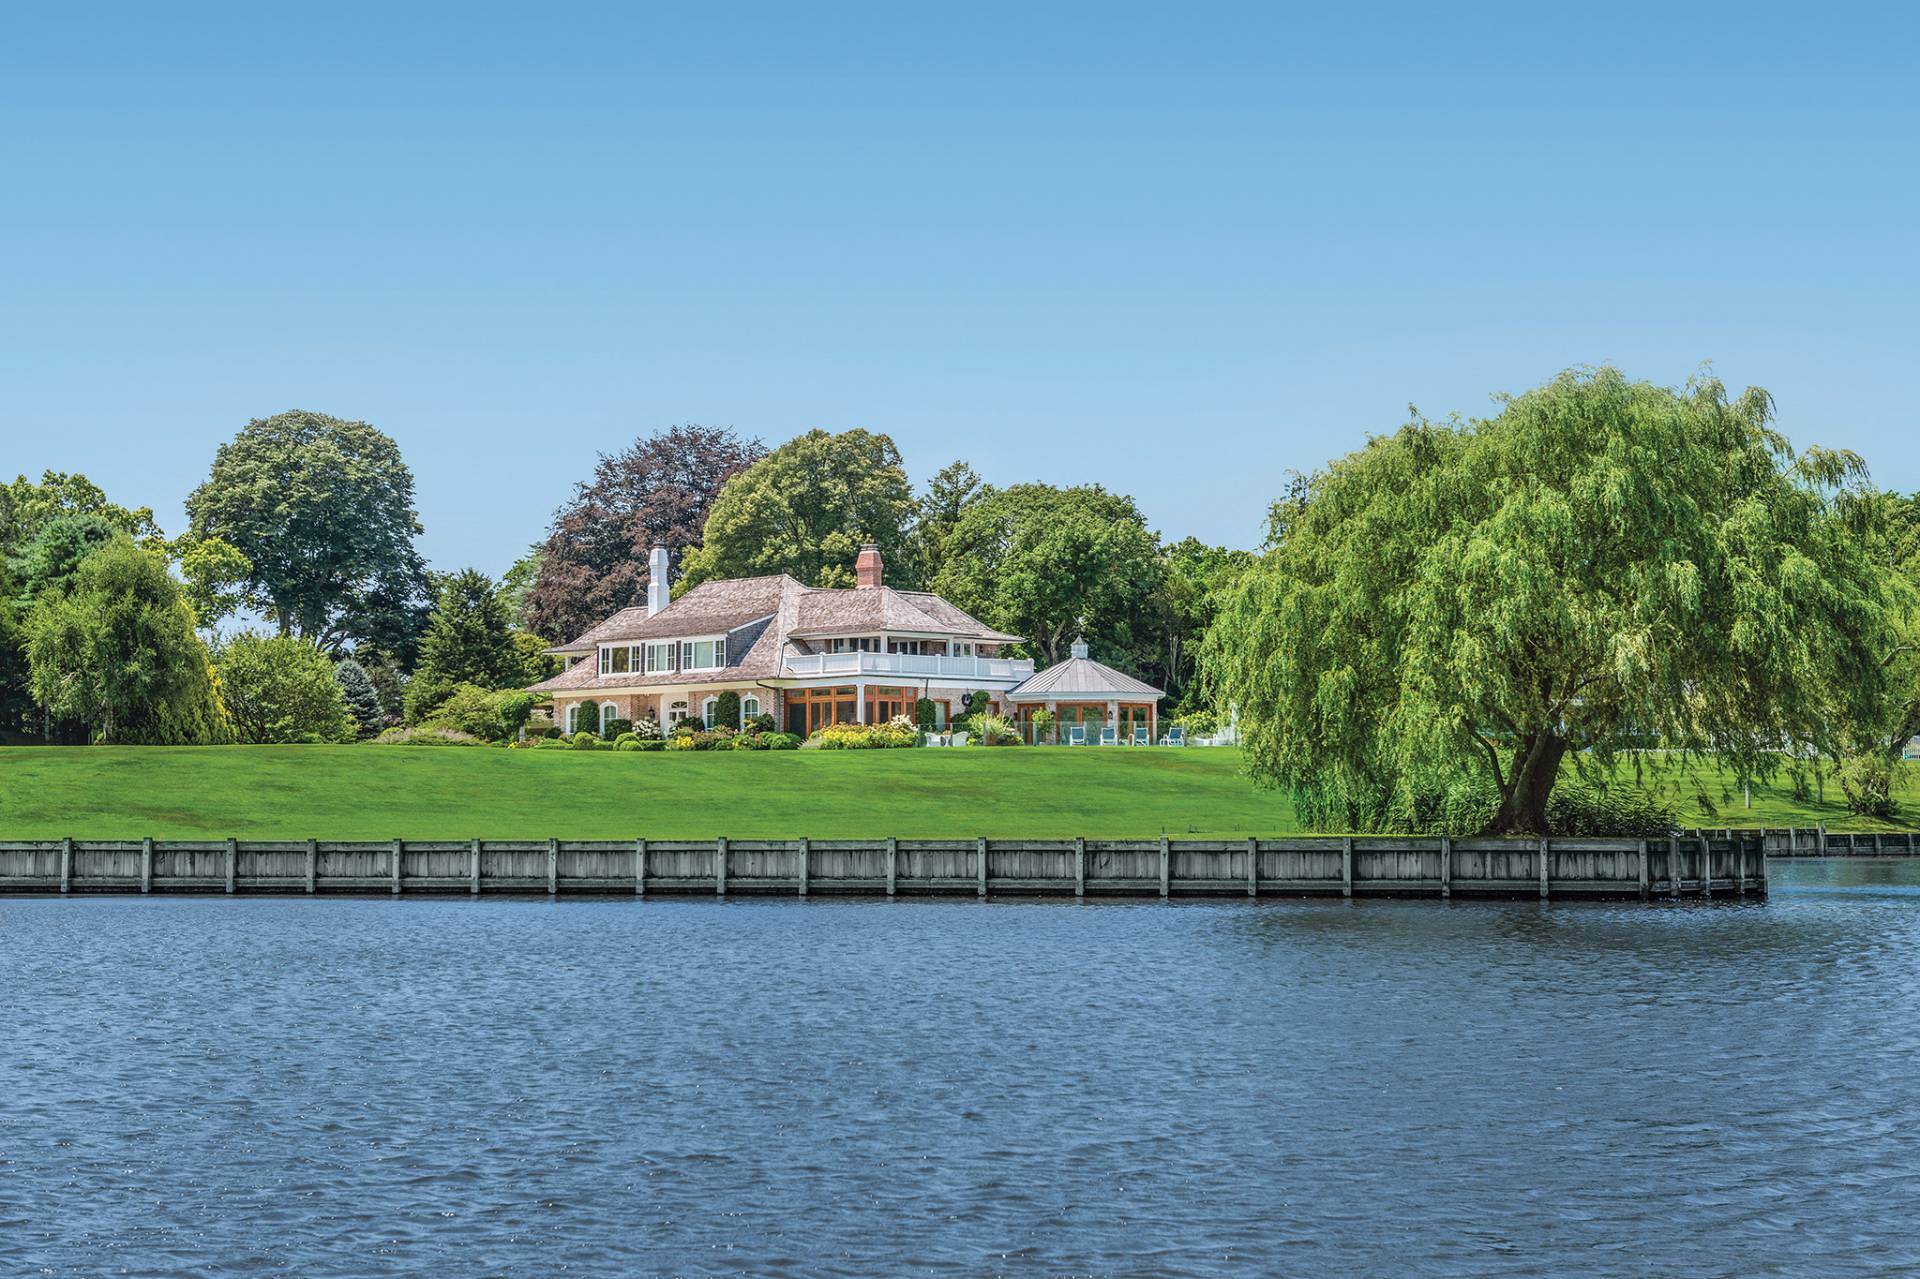 Single Family Home for Sale at Huge Price Reduction - Magnificent Mecox Bay Waterfront Estate 33 Mecox Lane, Water Mill, New York